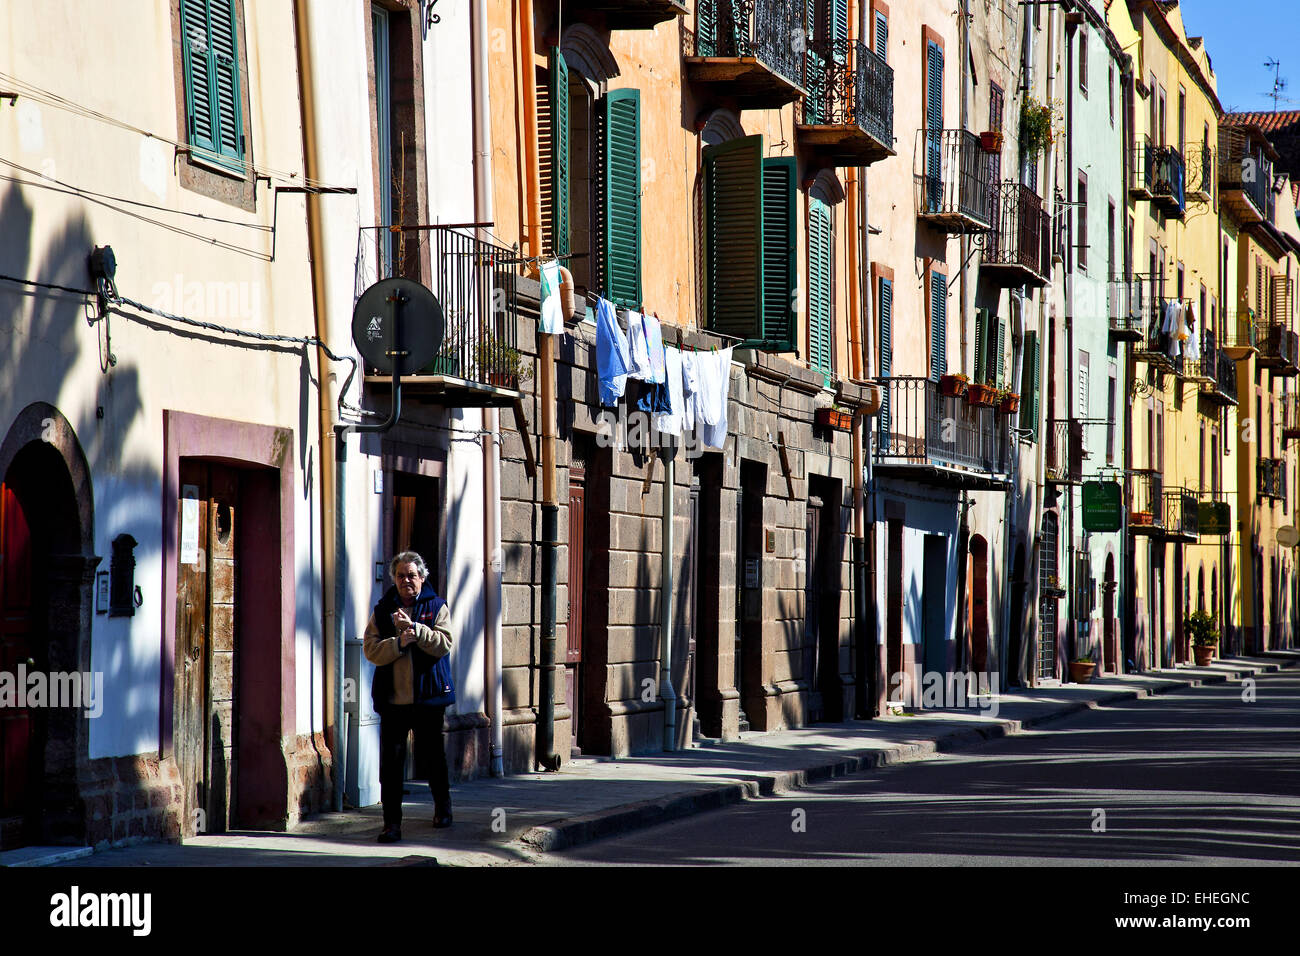 street facades, Bosa, Sardinia, Italy Stock Photo